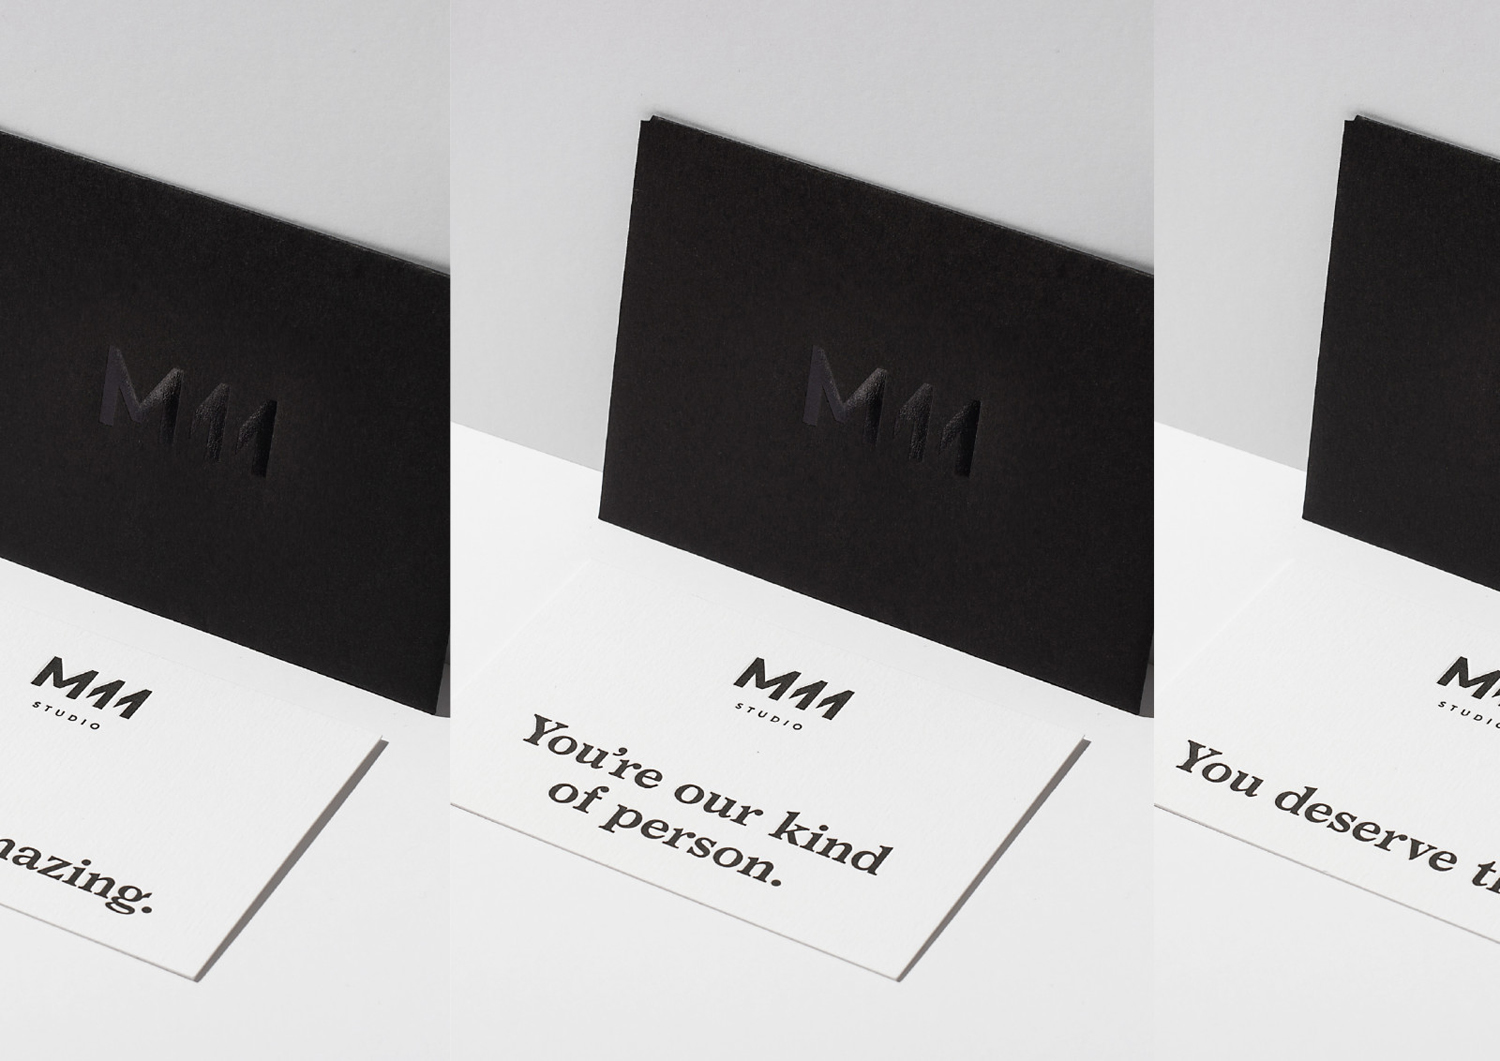 Brand identity for Auckland-based luxe salon M11 designed by Inhouse, New Zealand